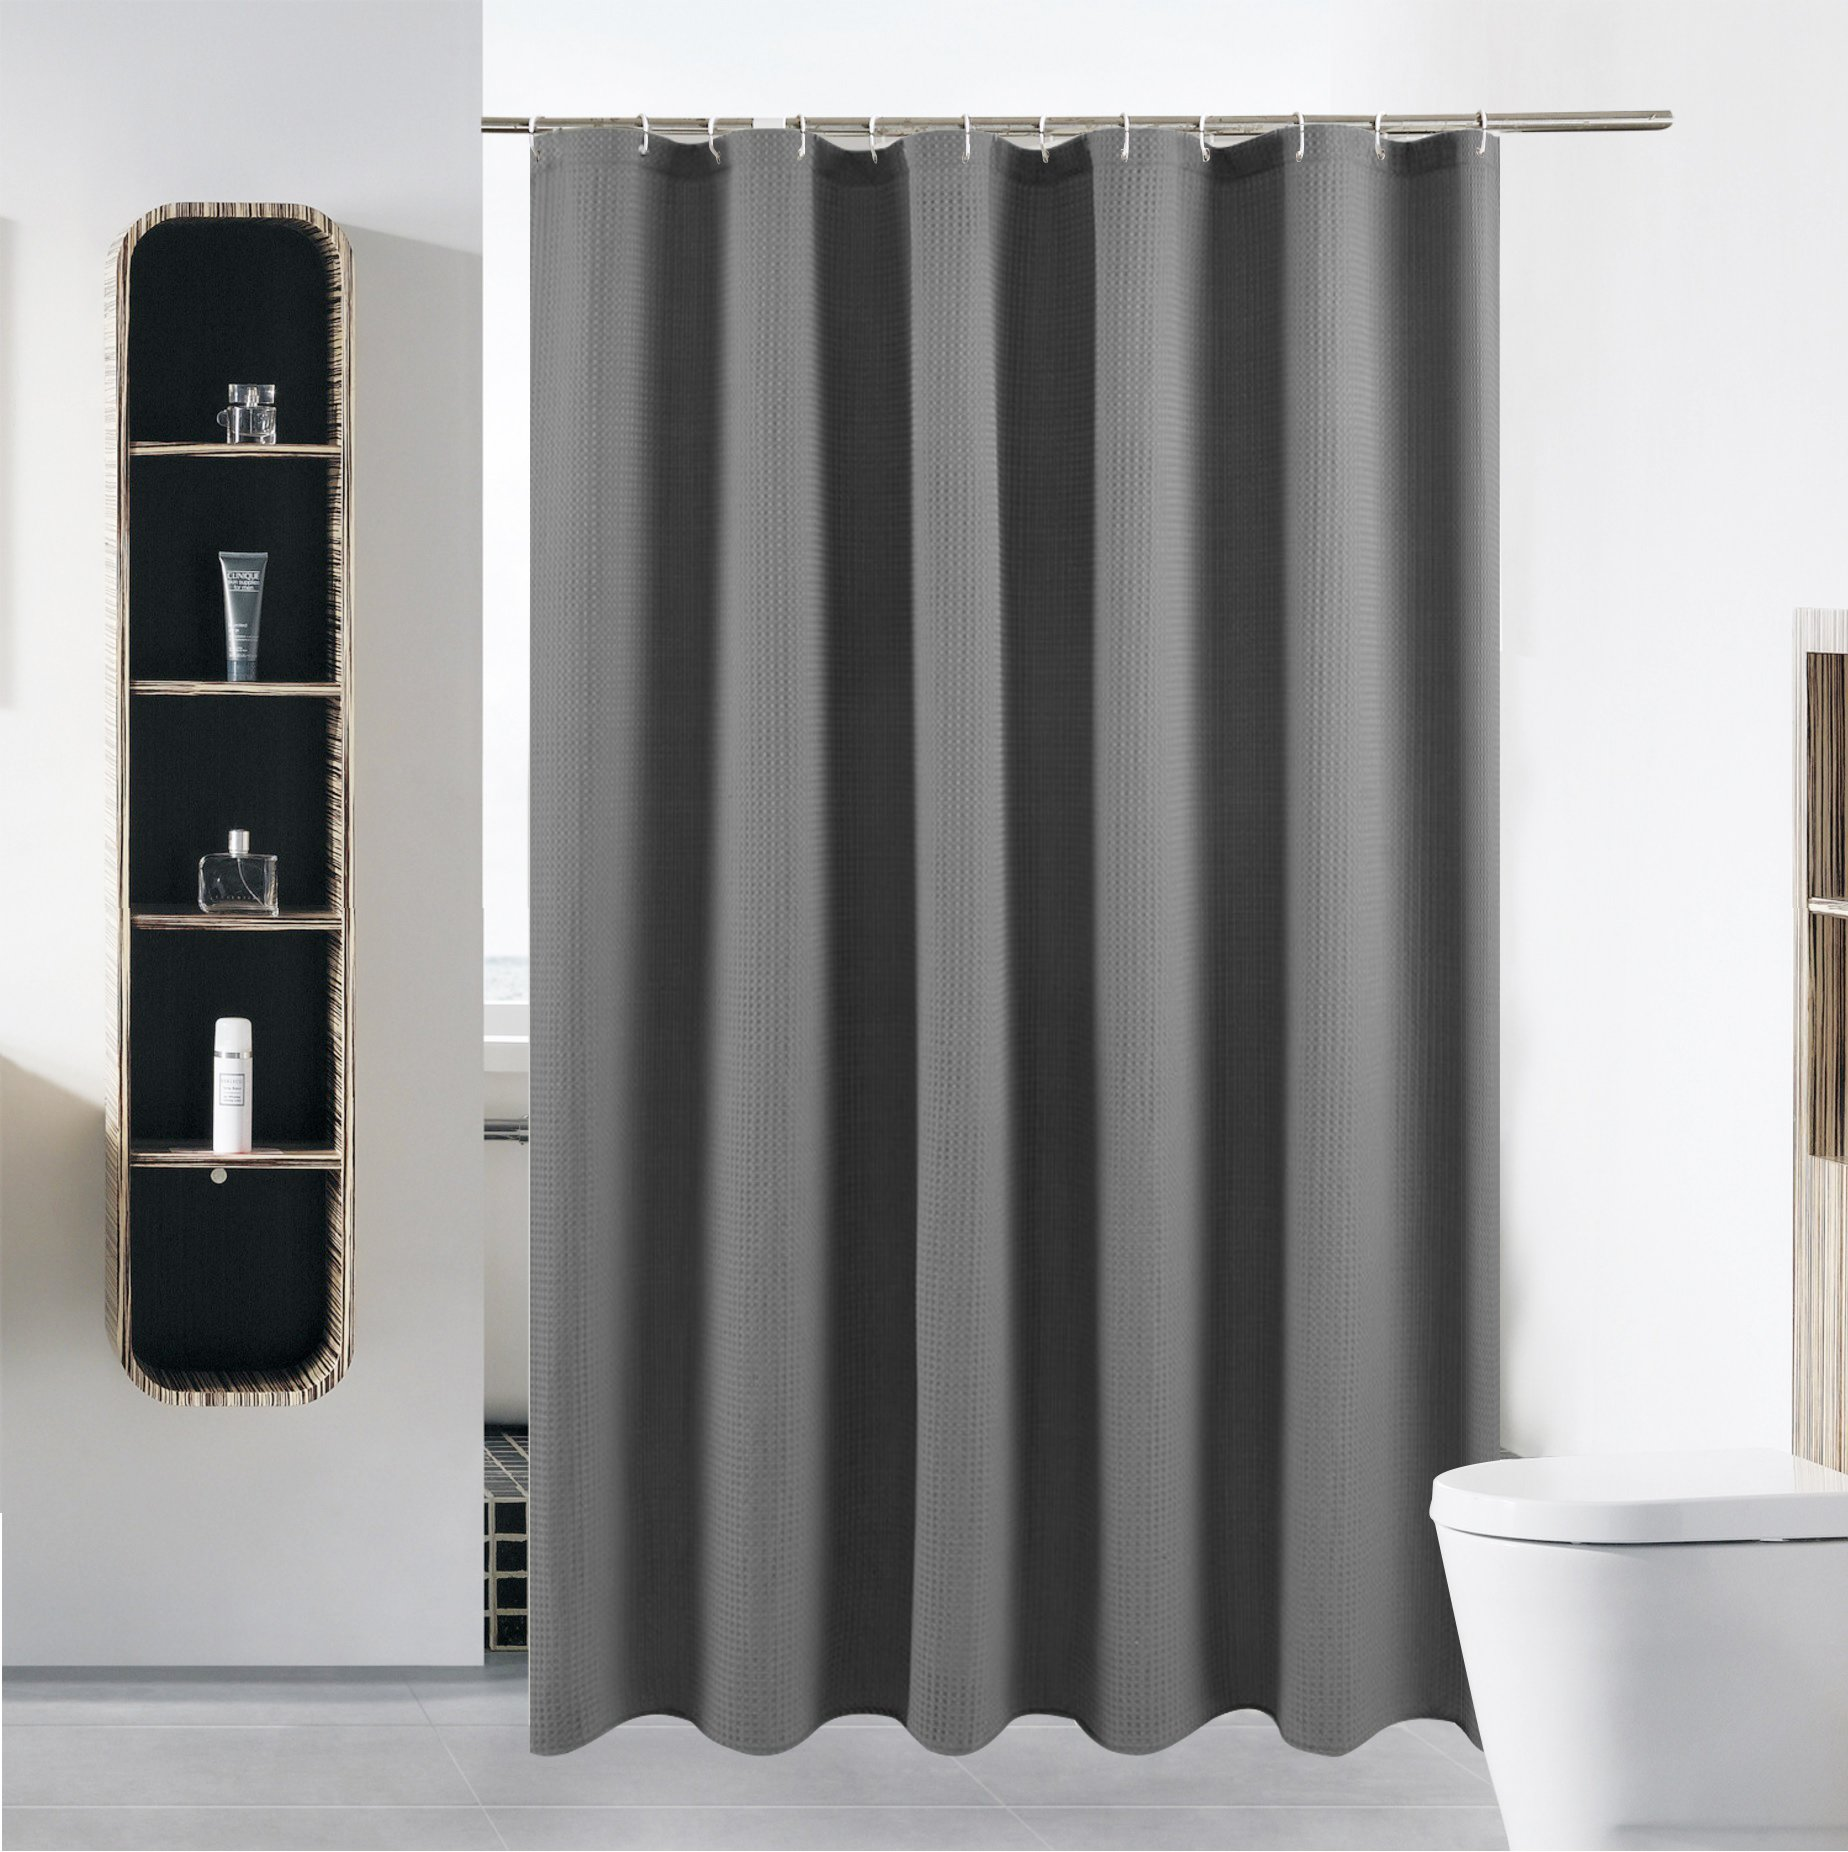 """S·Lattye Standard Fabric Shower Curtain Set or Liner for Bathroom Washable Water Repellent Cloth Polyester (Best Hotel Quality Friendly) with Curved Plastic Hooks - 72"""" x 72"""", Gray Waffle"""